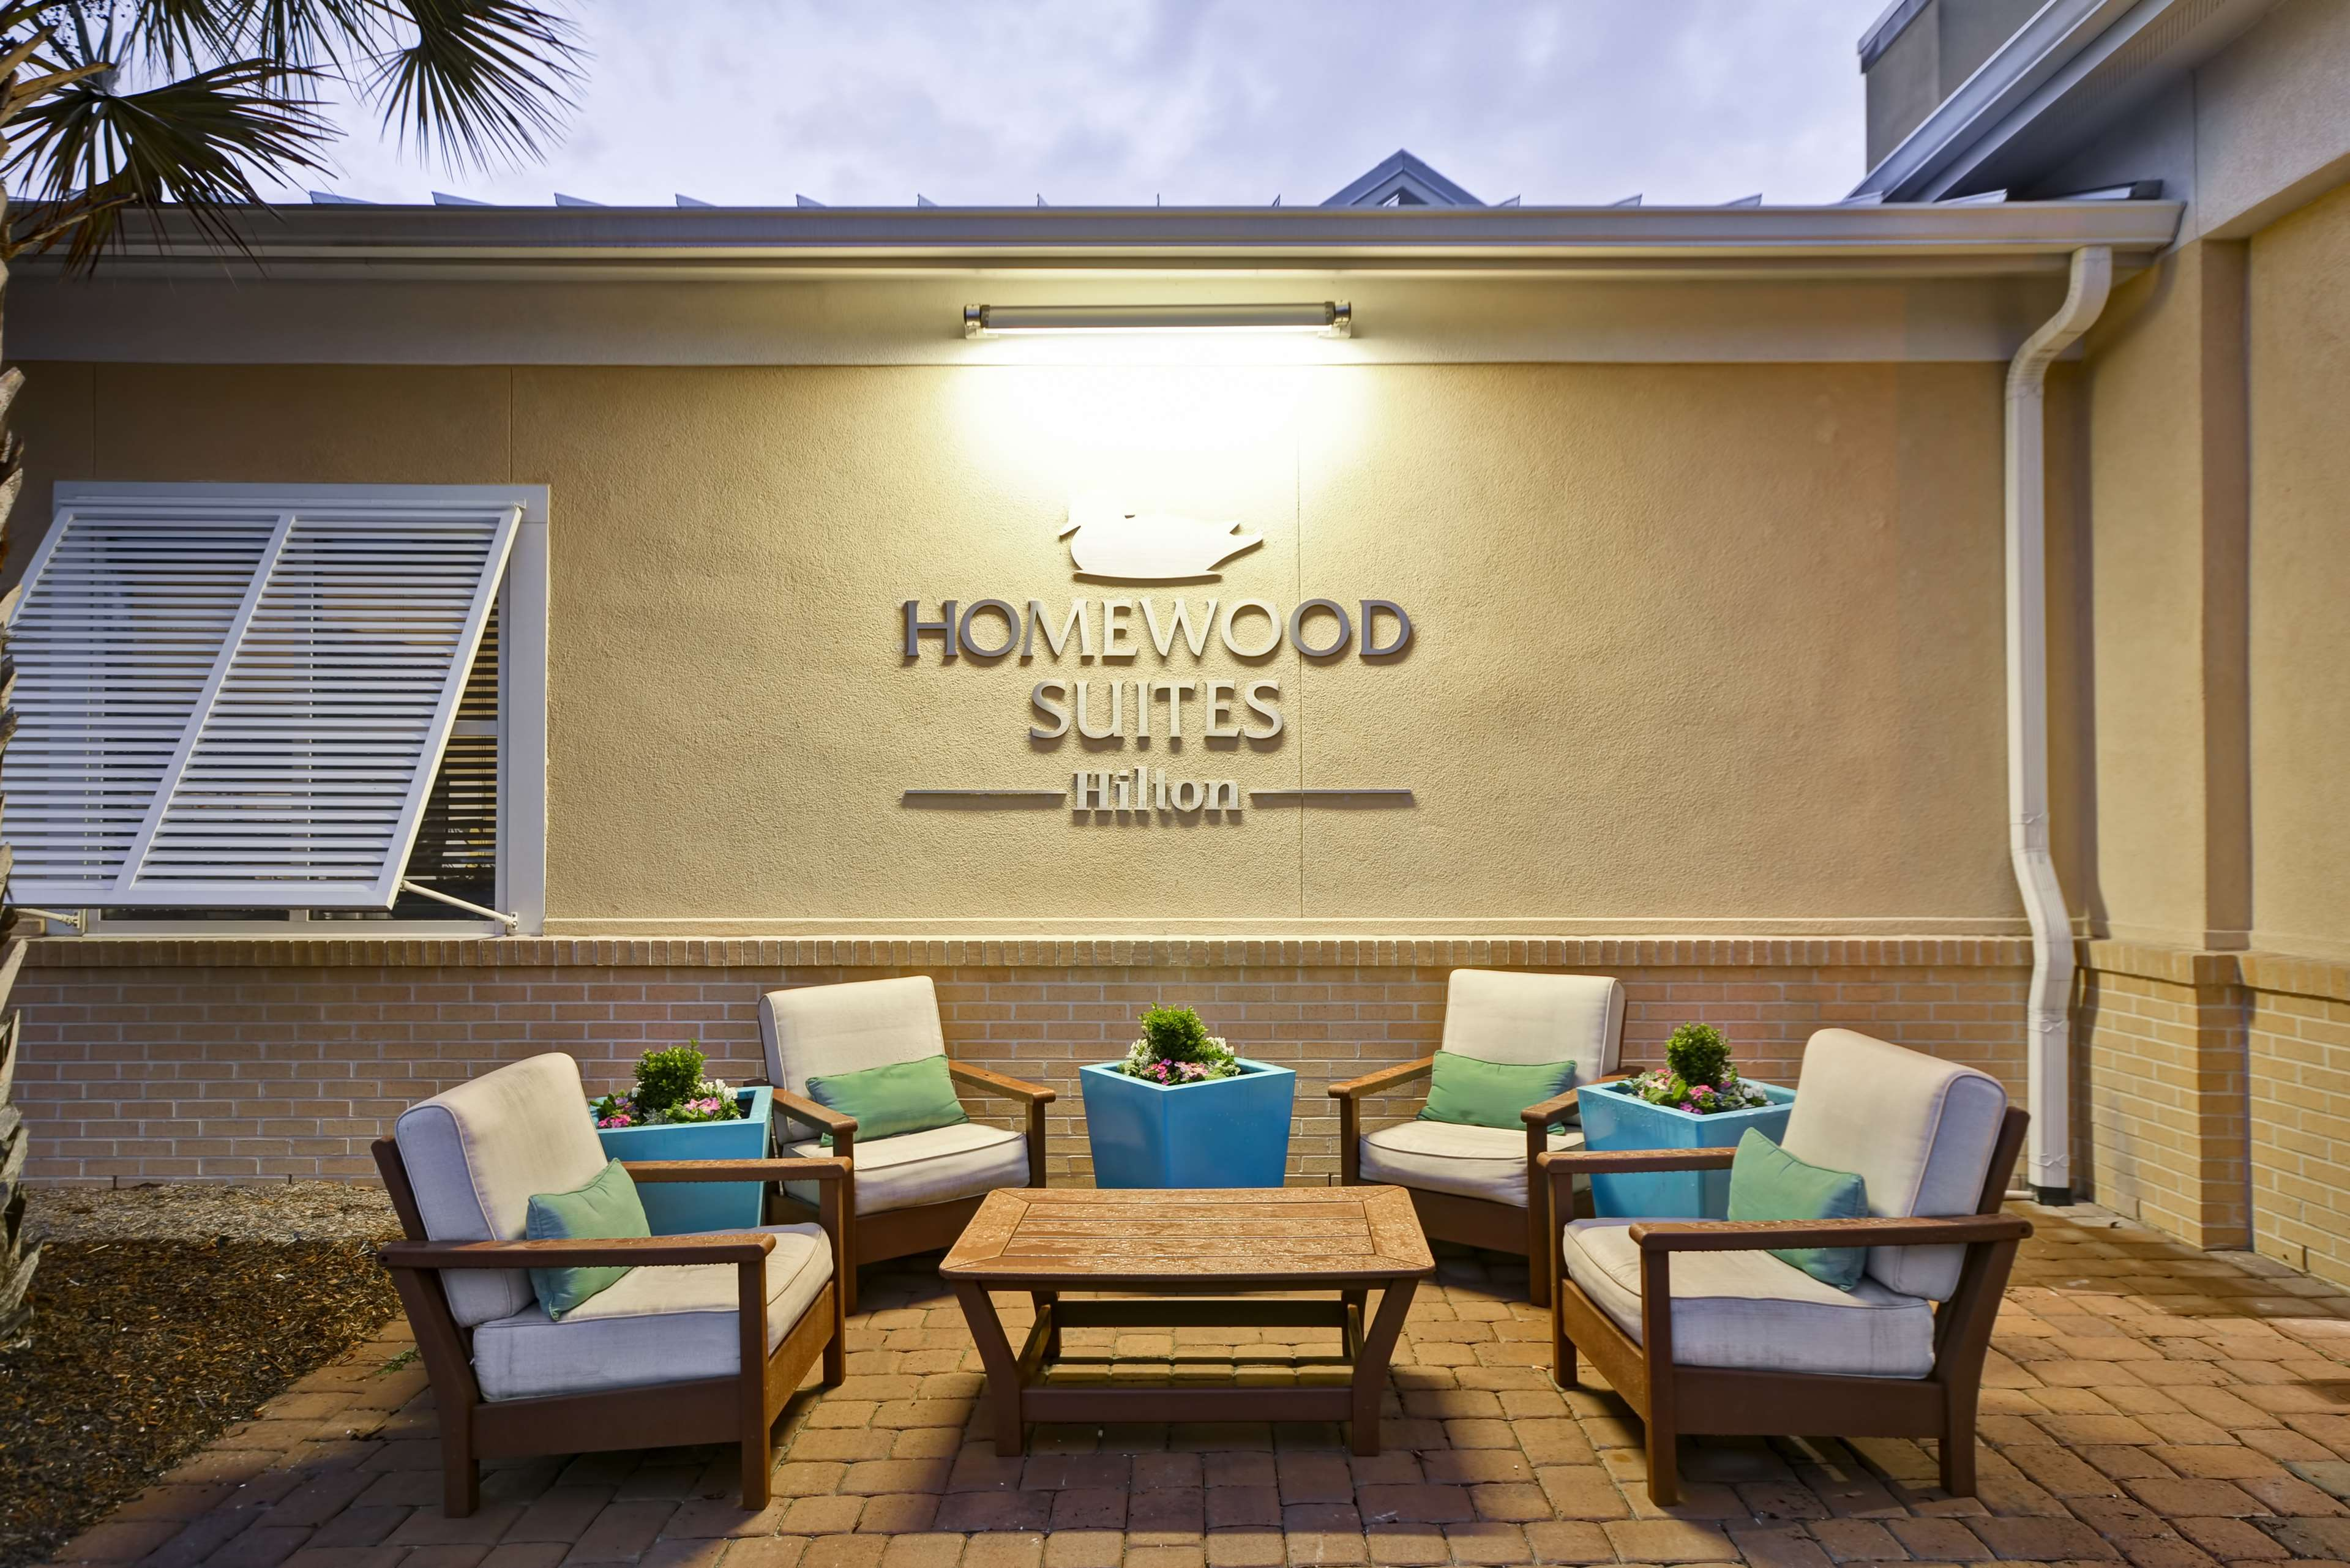 Homewood Suites by Hilton Wilmington/Mayfaire, NC image 1